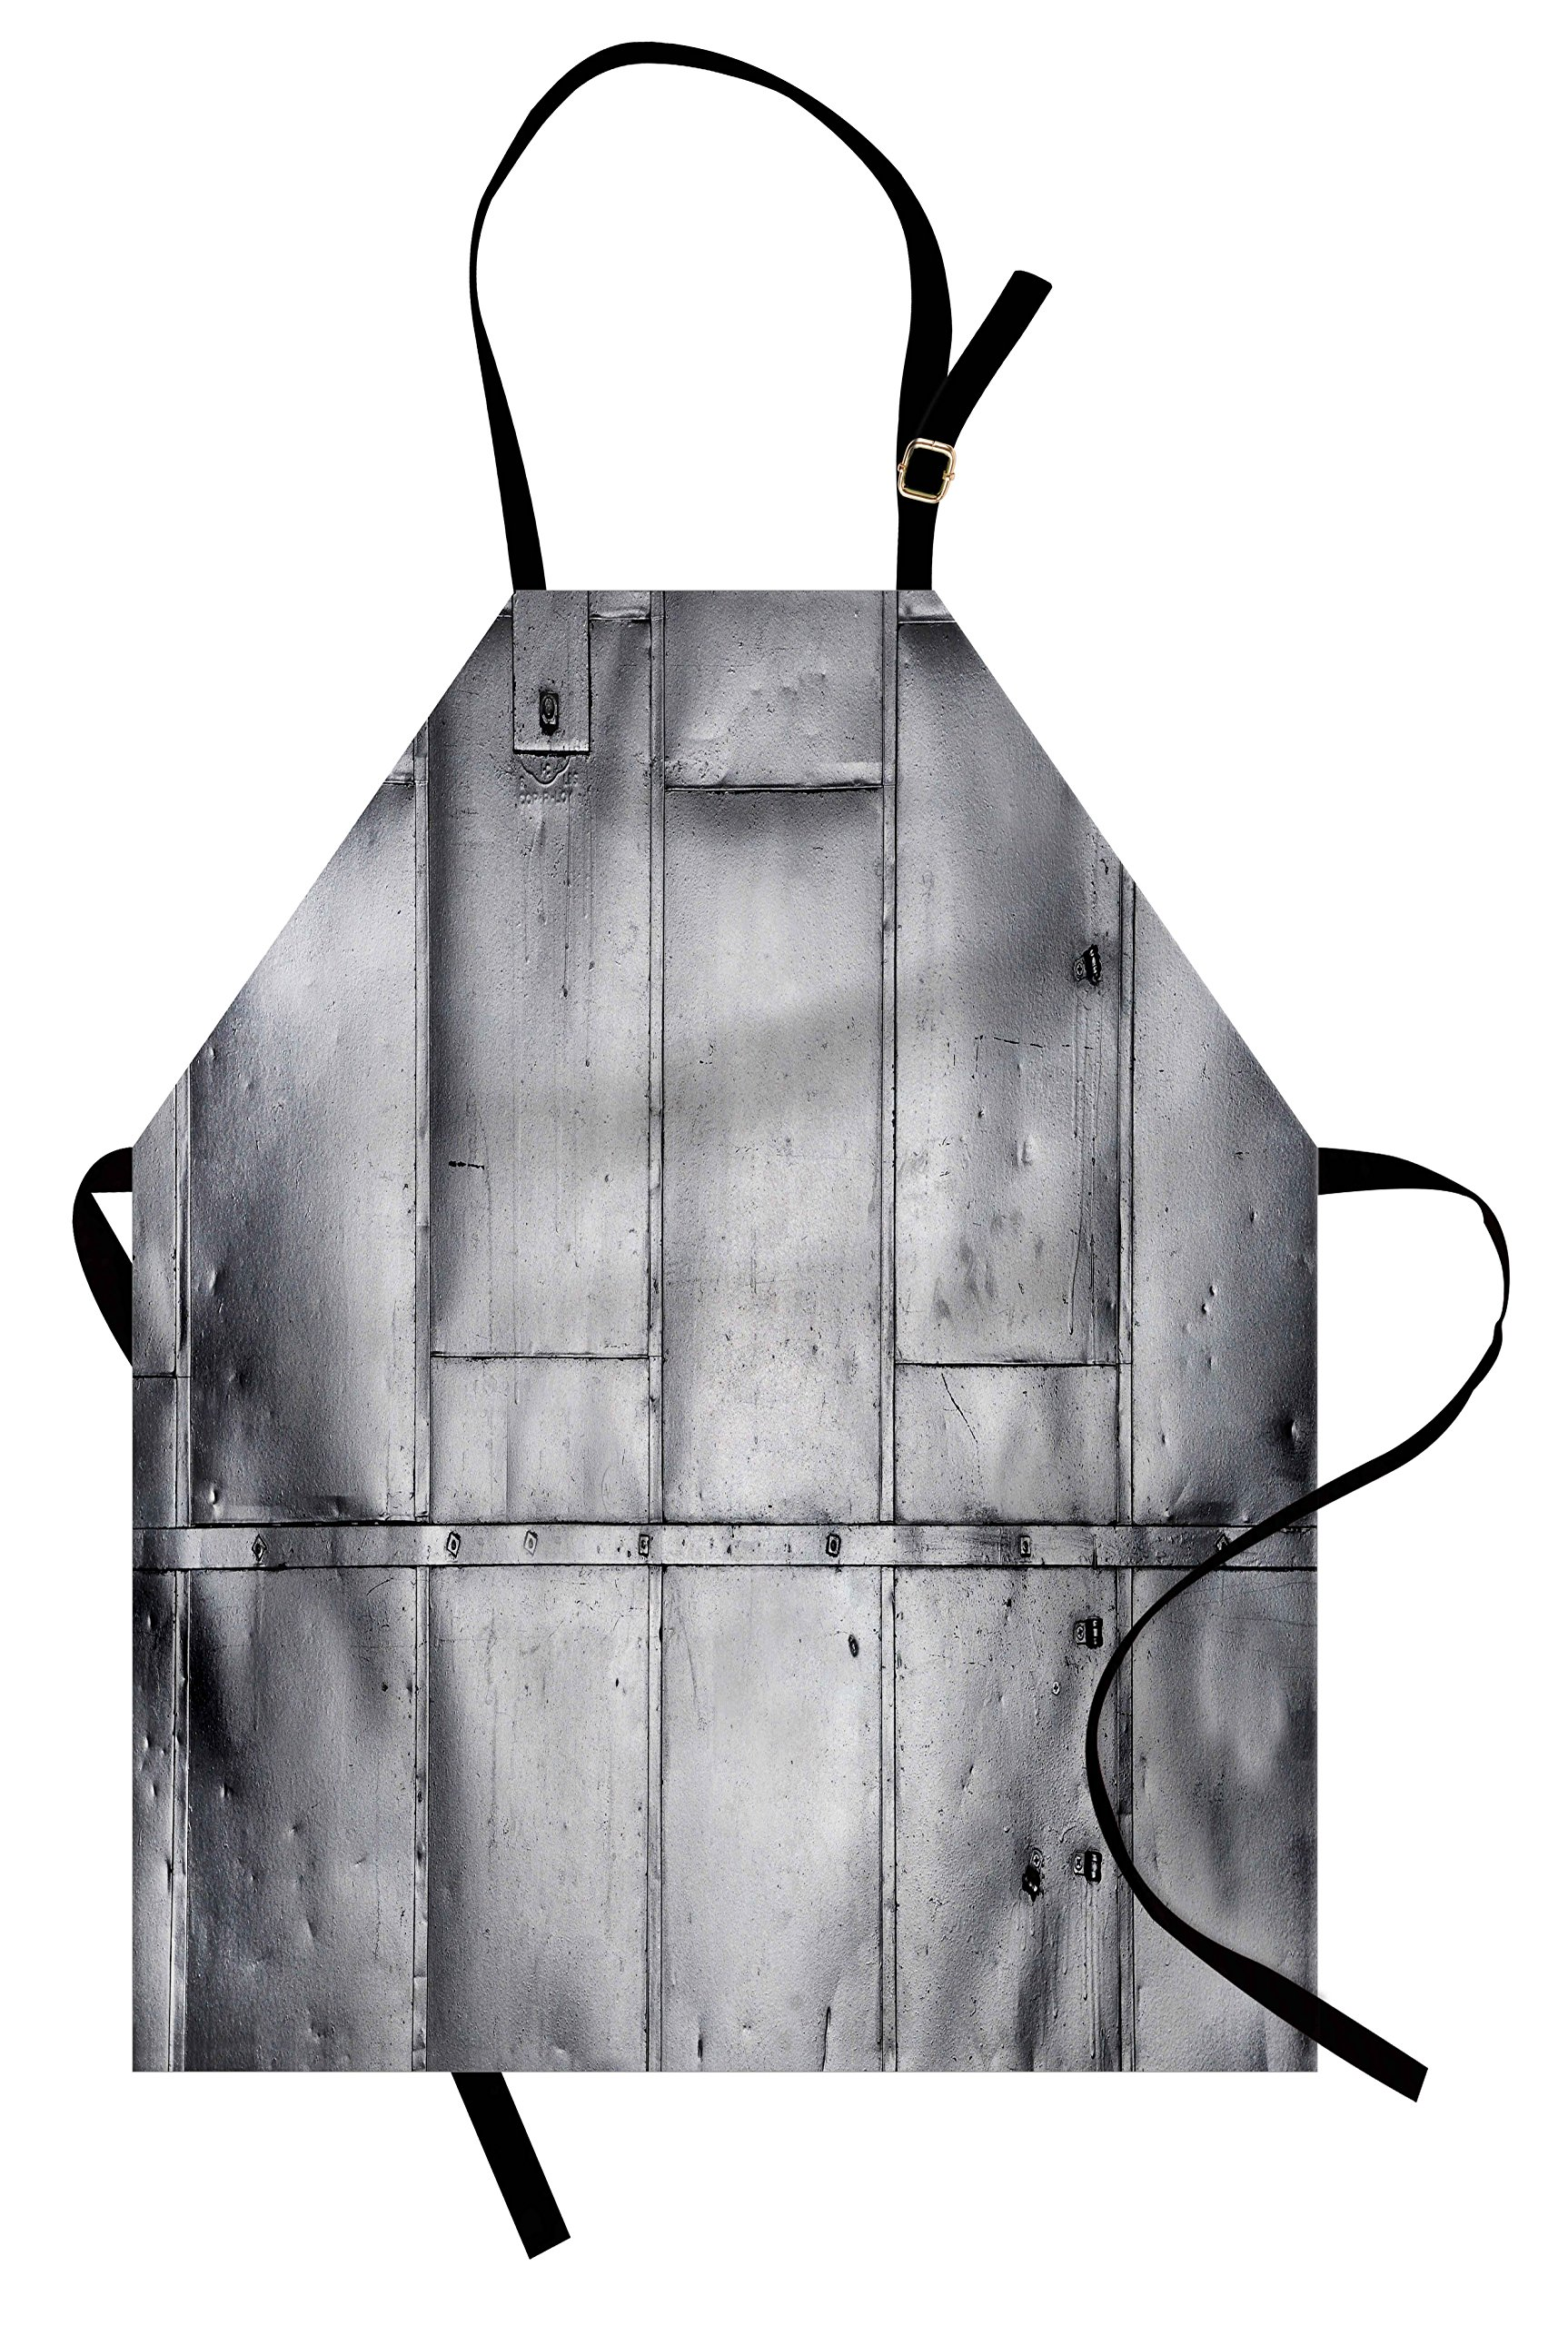 Ambesonne Industrial Apron, Steel Panels Industrial Wall Theme Aluminum Background Futuristic Engineering Print, Unisex Kitchen Bib Apron with Adjustable Neck for Cooking Baking Gardening, Silver